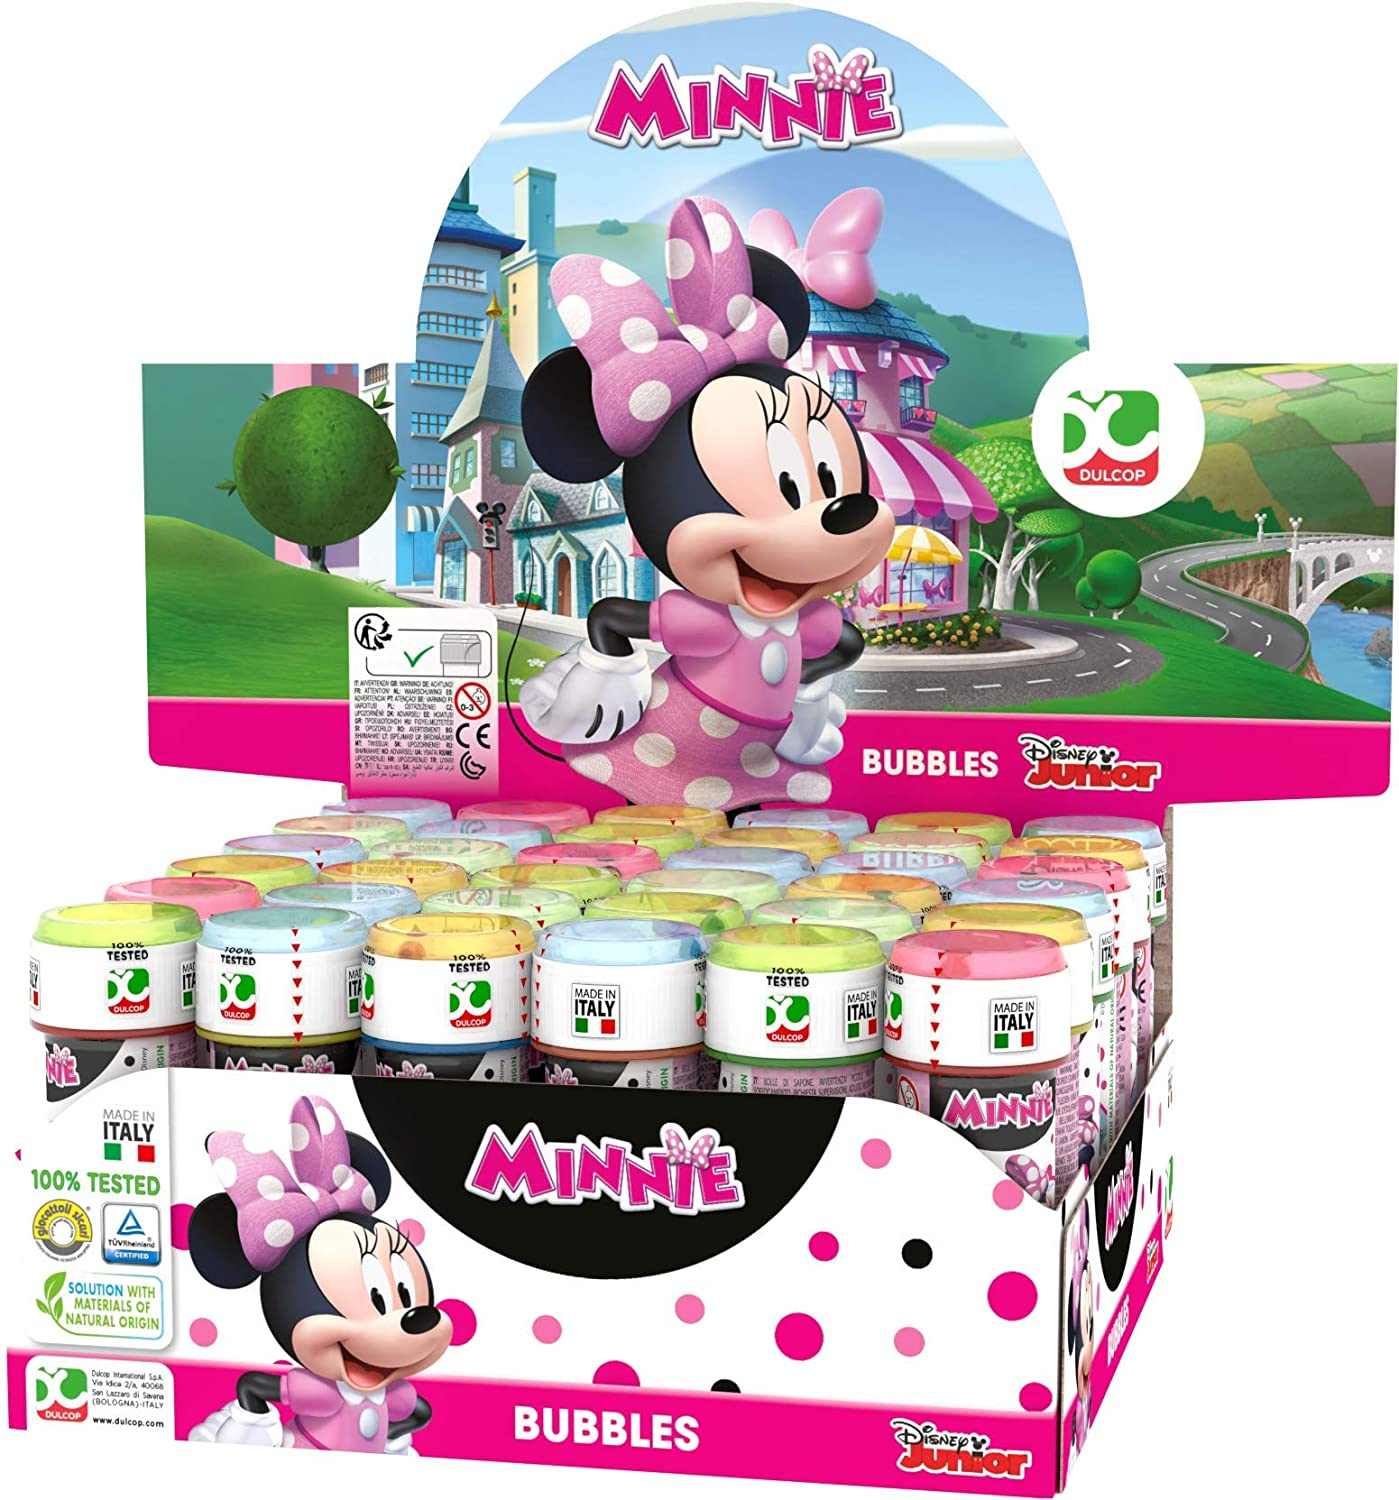 Amazon.com: Burbuja Tinas Minnie Mouse PK36 [Juguete]: Toys ...